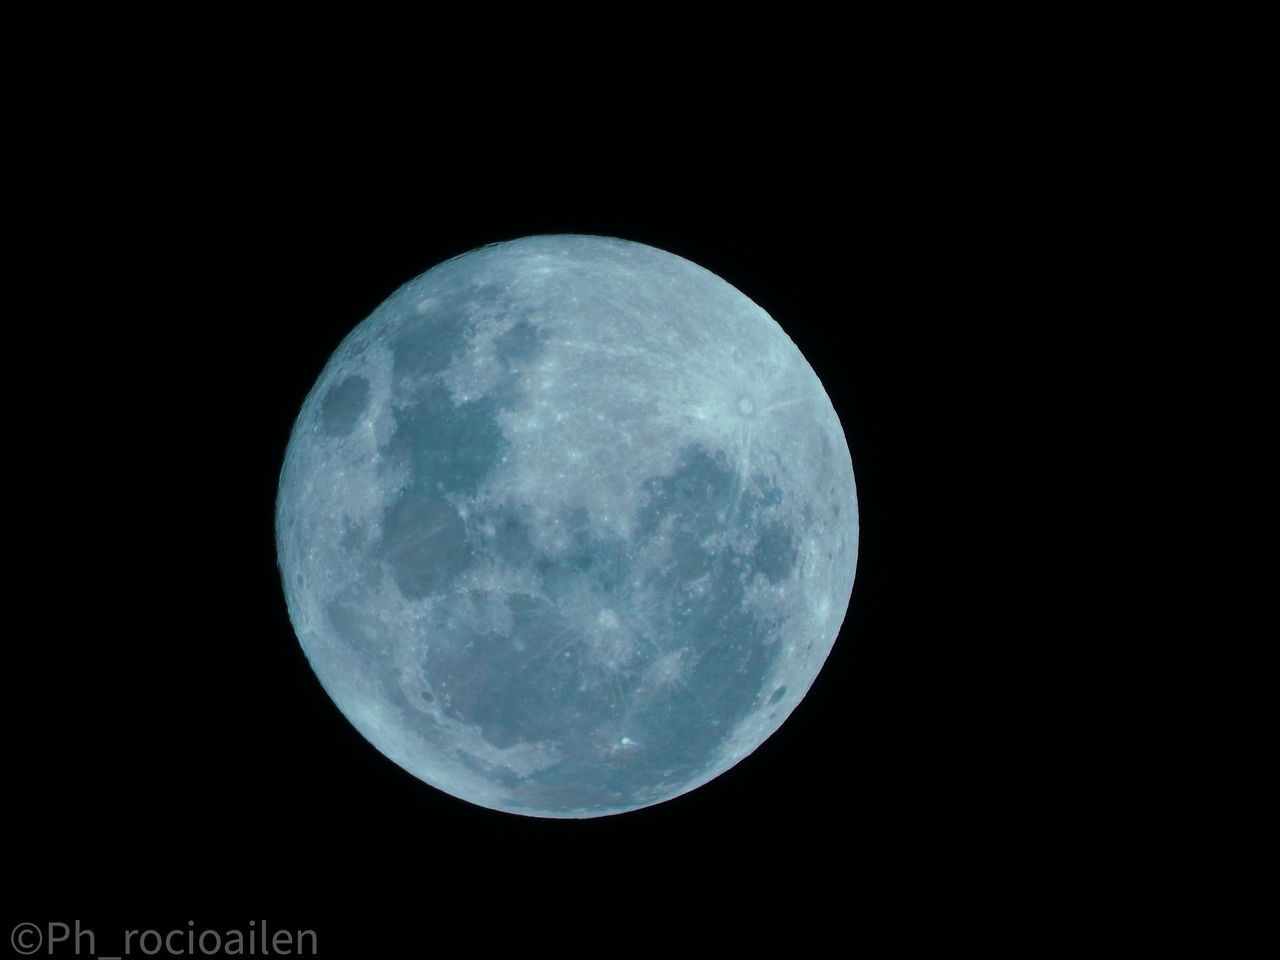 LOW ANGLE VIEW OF FULL MOON AGAINST SKY